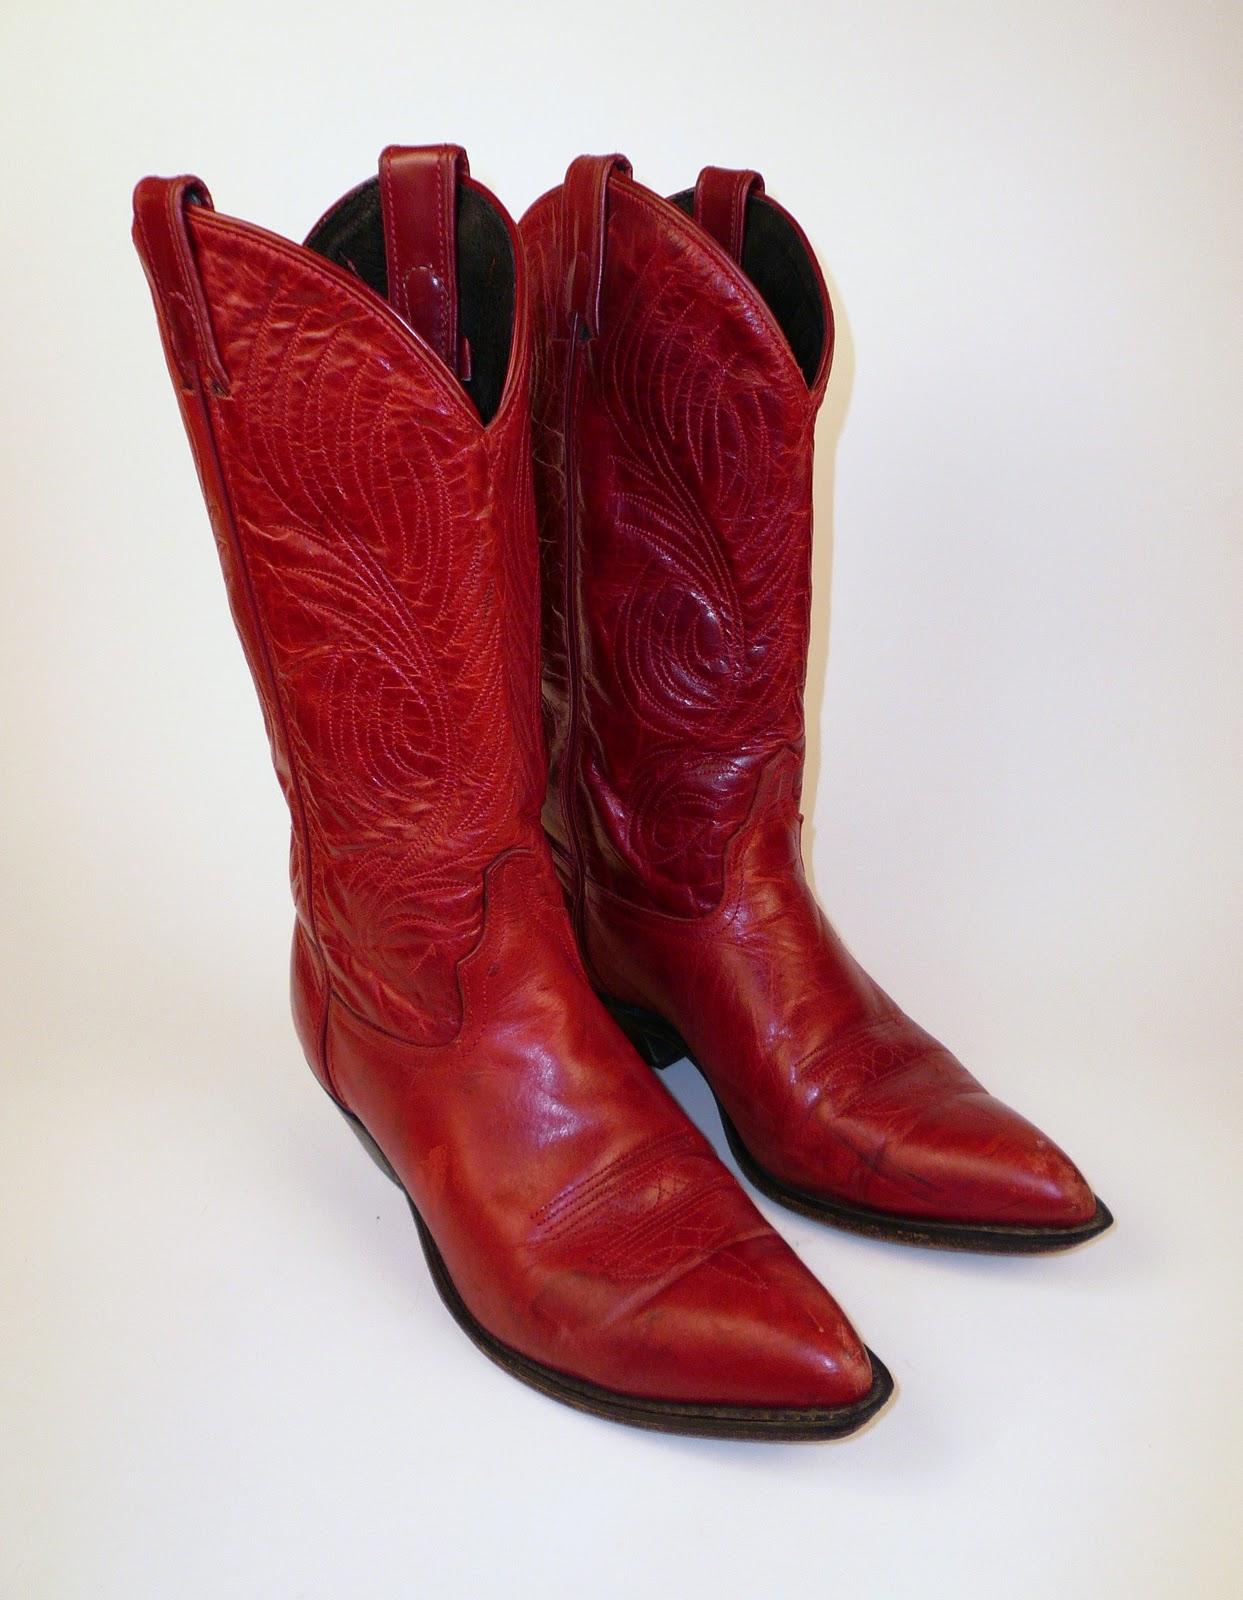 Unique Red Cowboy Boots Womens 8 B Tassels Suede Leather Fringe